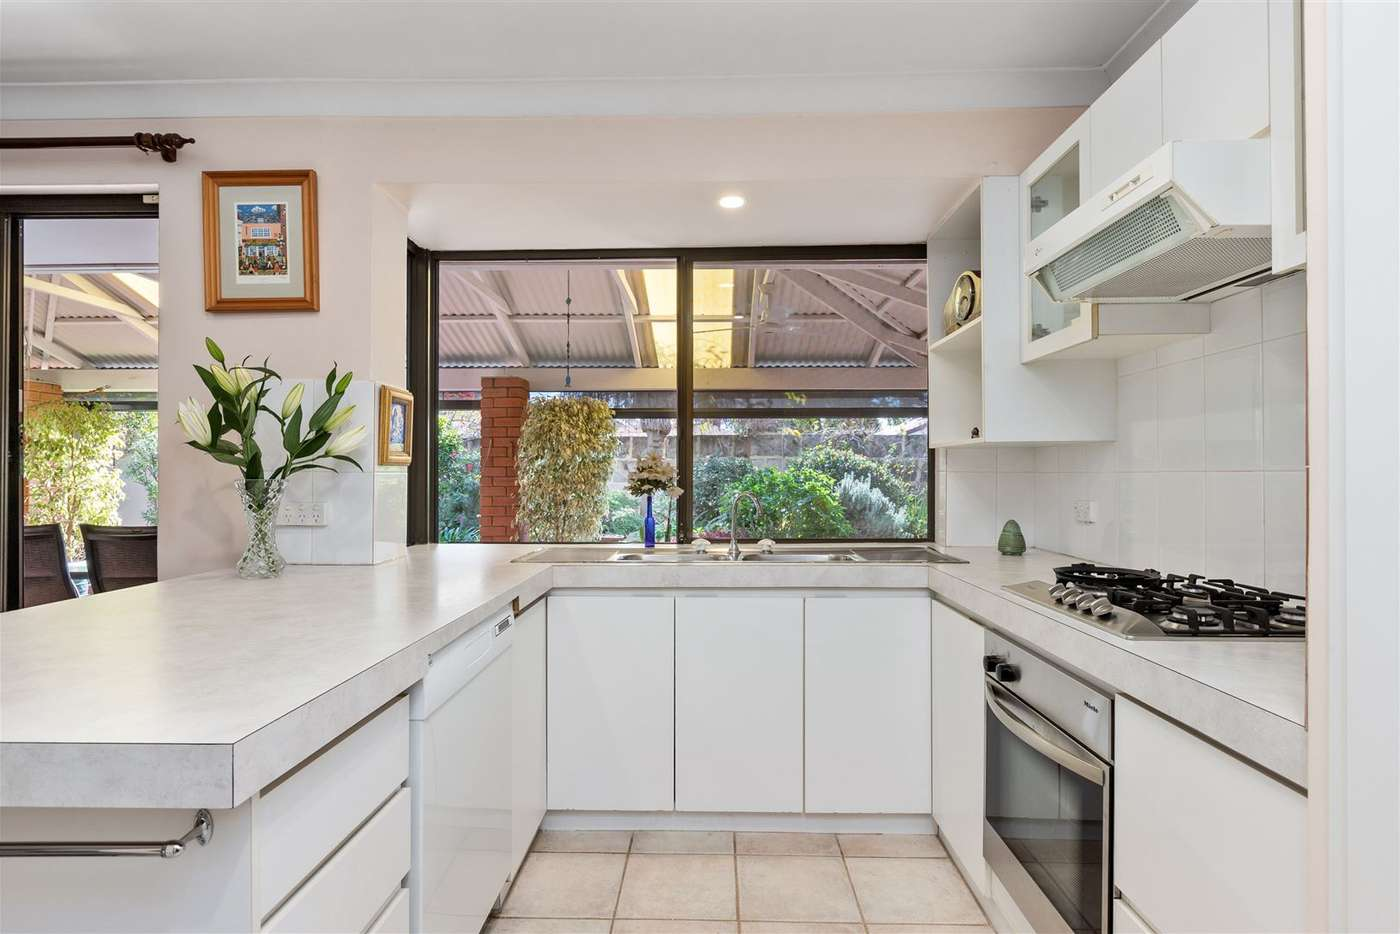 Seventh view of Homely house listing, 16 Munro Road, Applecross WA 6153